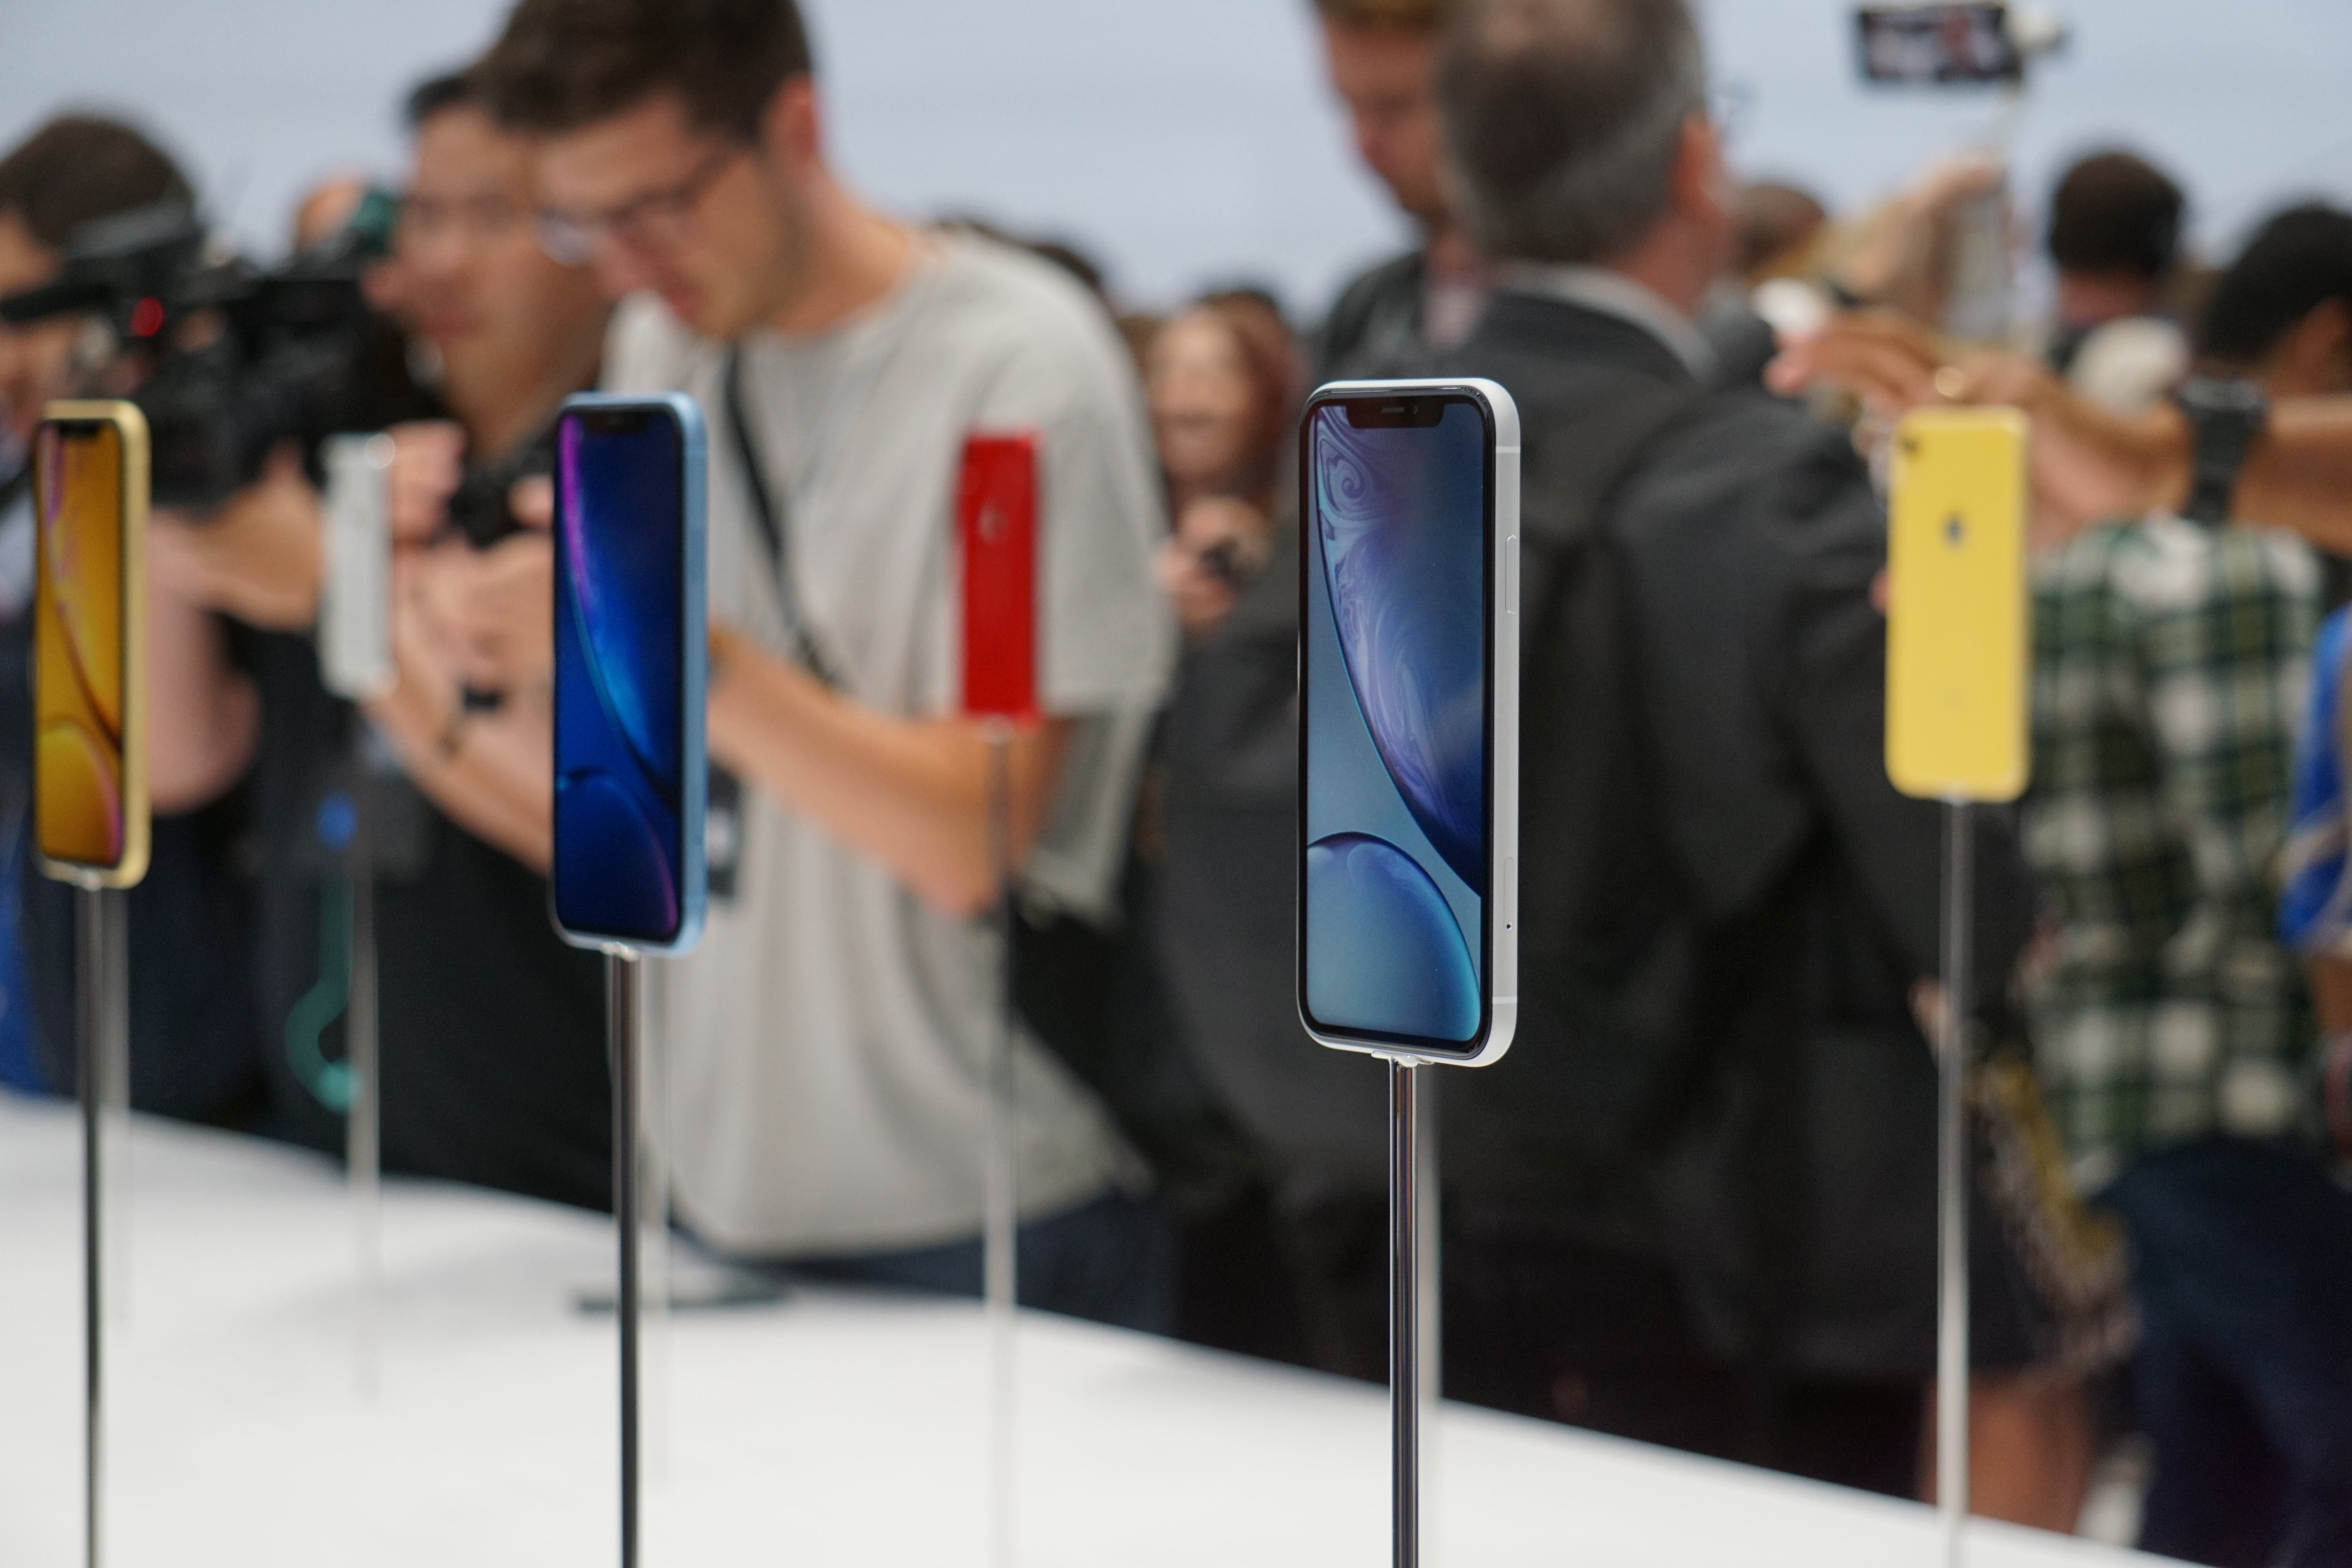 iPhone XS Max XR mobile apple